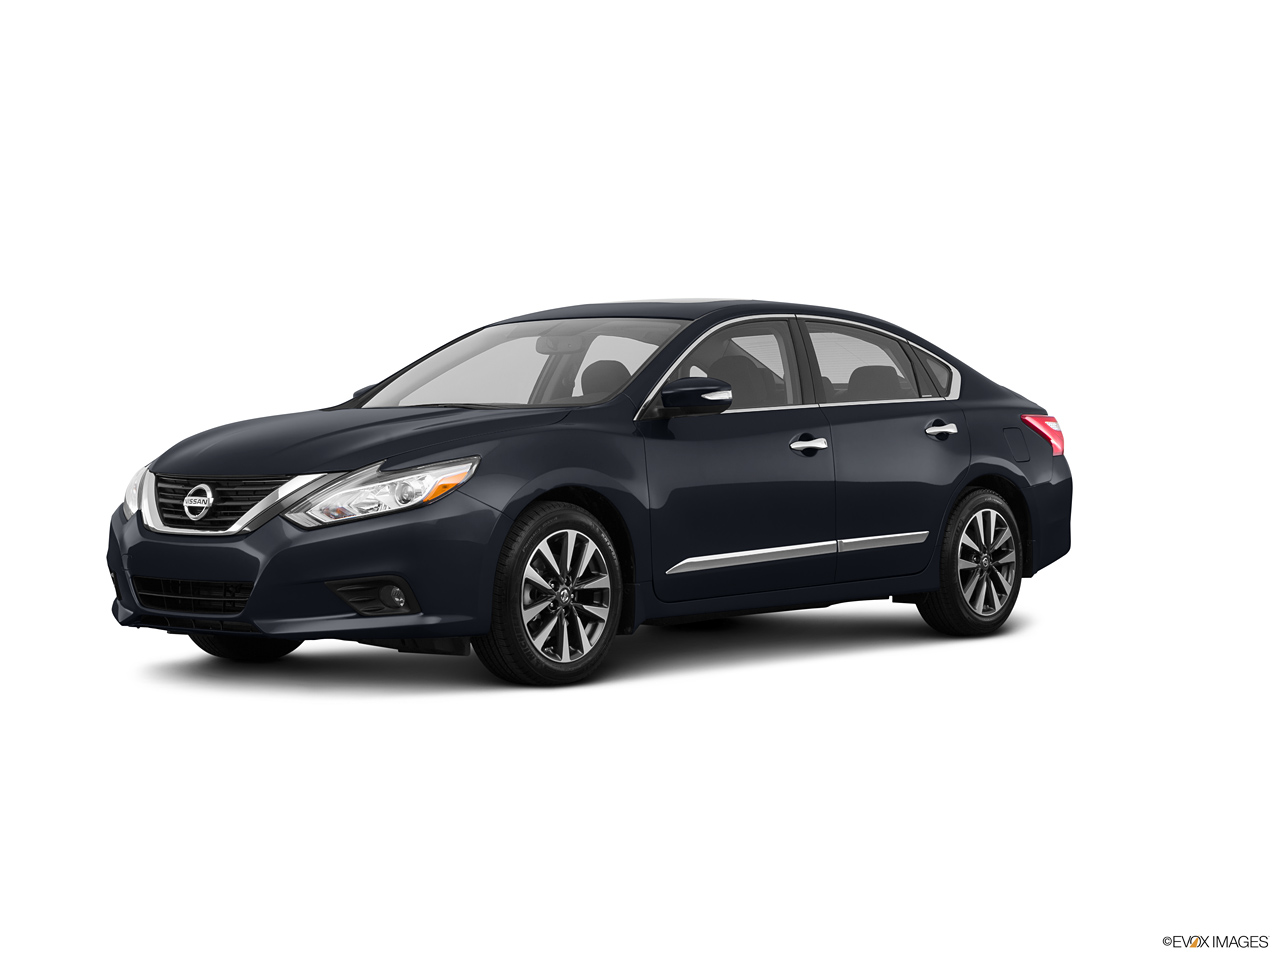 nissan altima 2017 2 5 sv in qatar new car prices specs reviews photos yallamotor. Black Bedroom Furniture Sets. Home Design Ideas